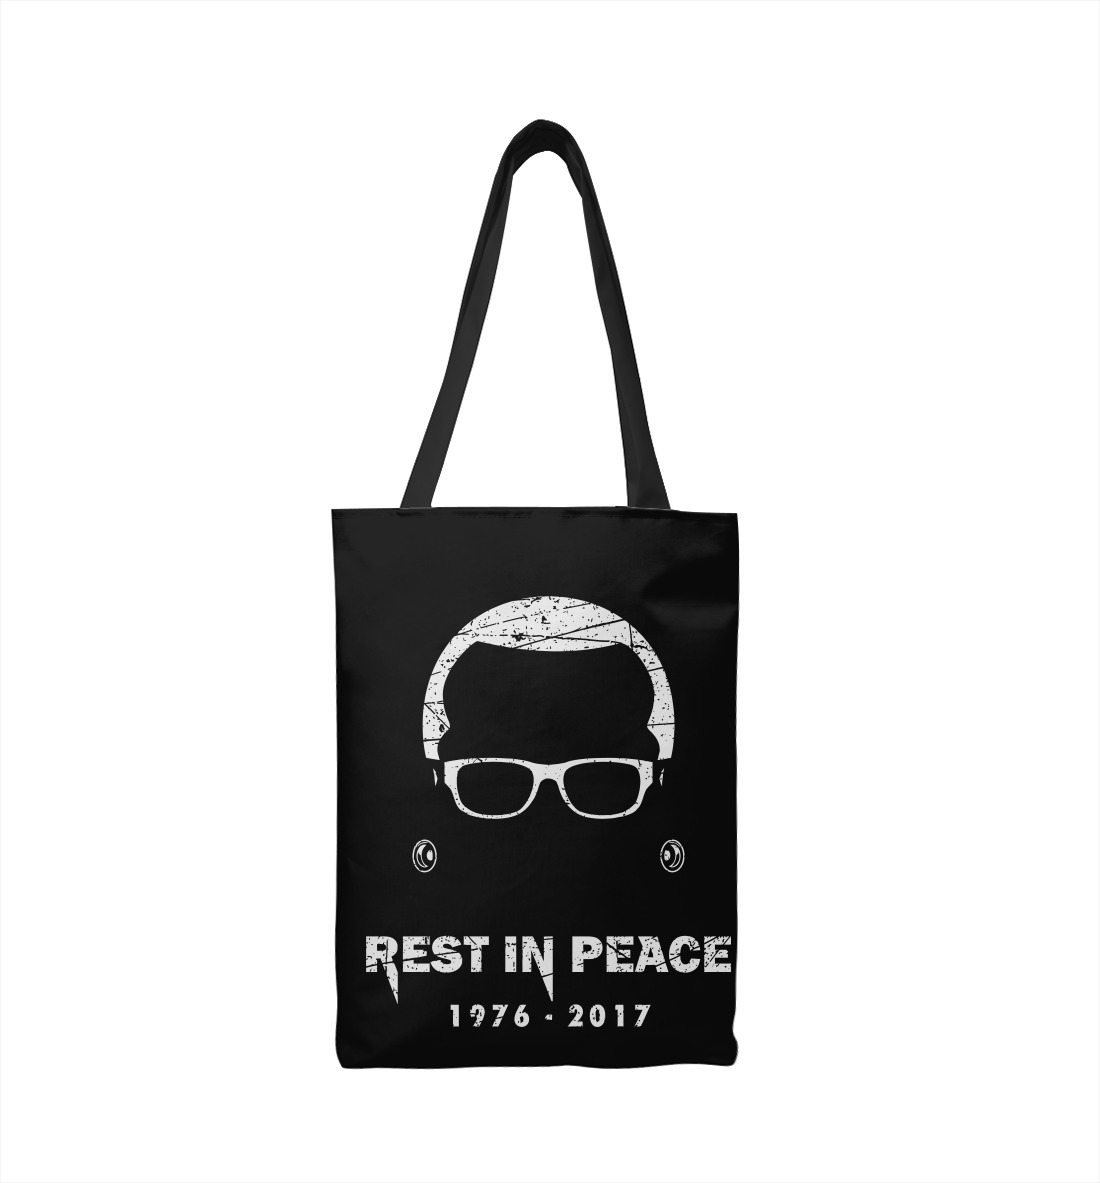 RIP Chester